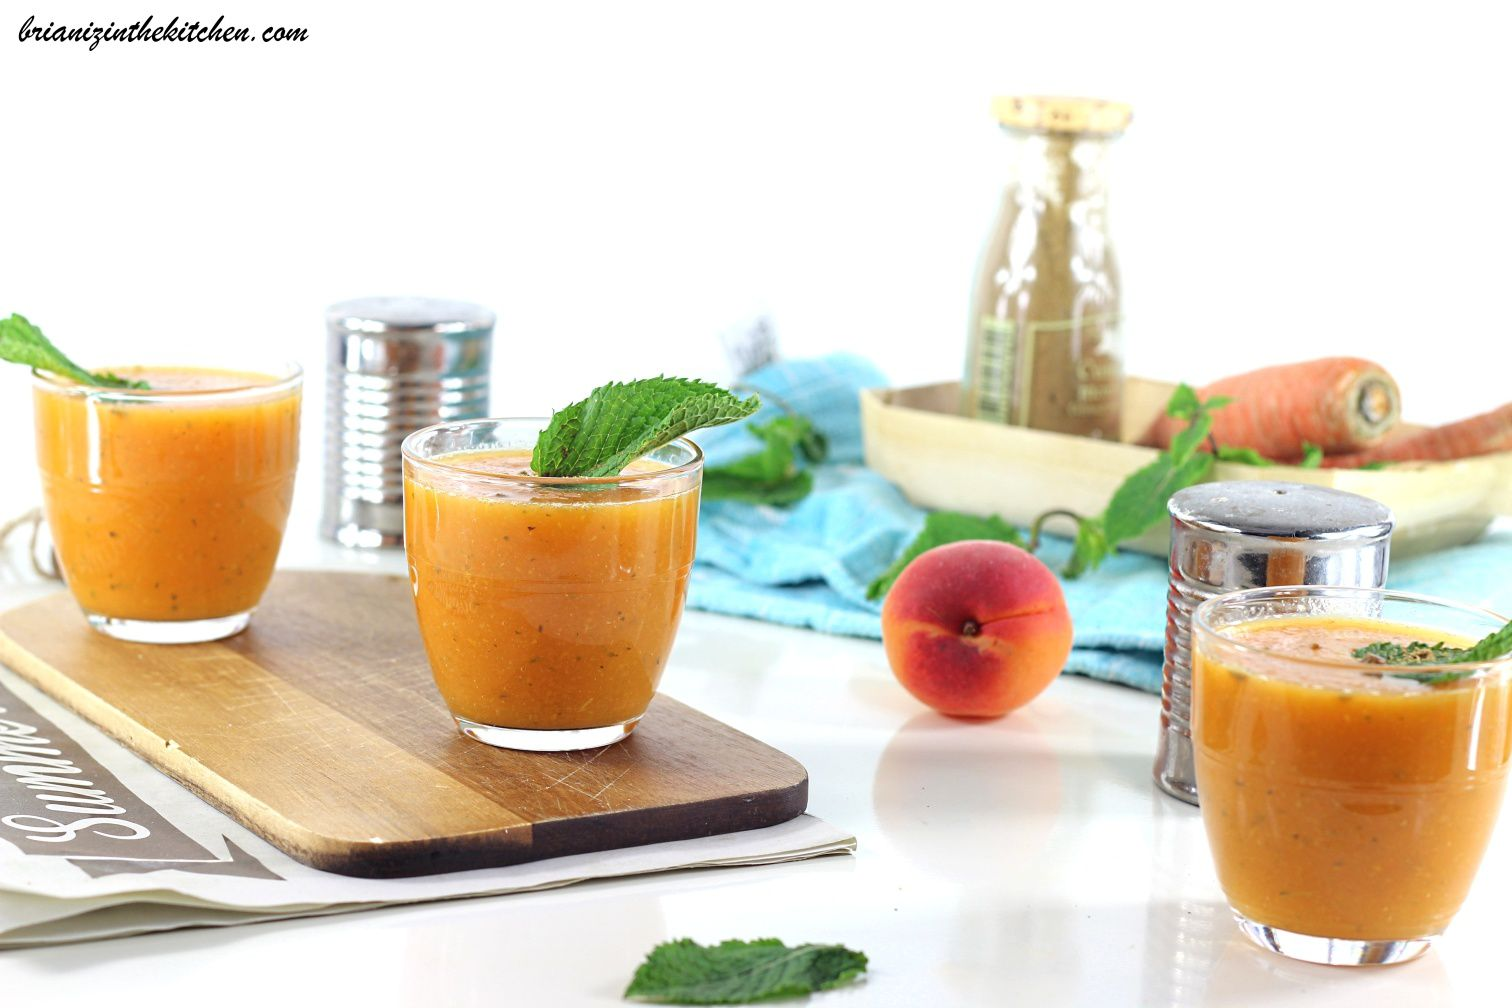 soupe froide carottes et abricots cumin menthe brian iz in the kitchen. Black Bedroom Furniture Sets. Home Design Ideas